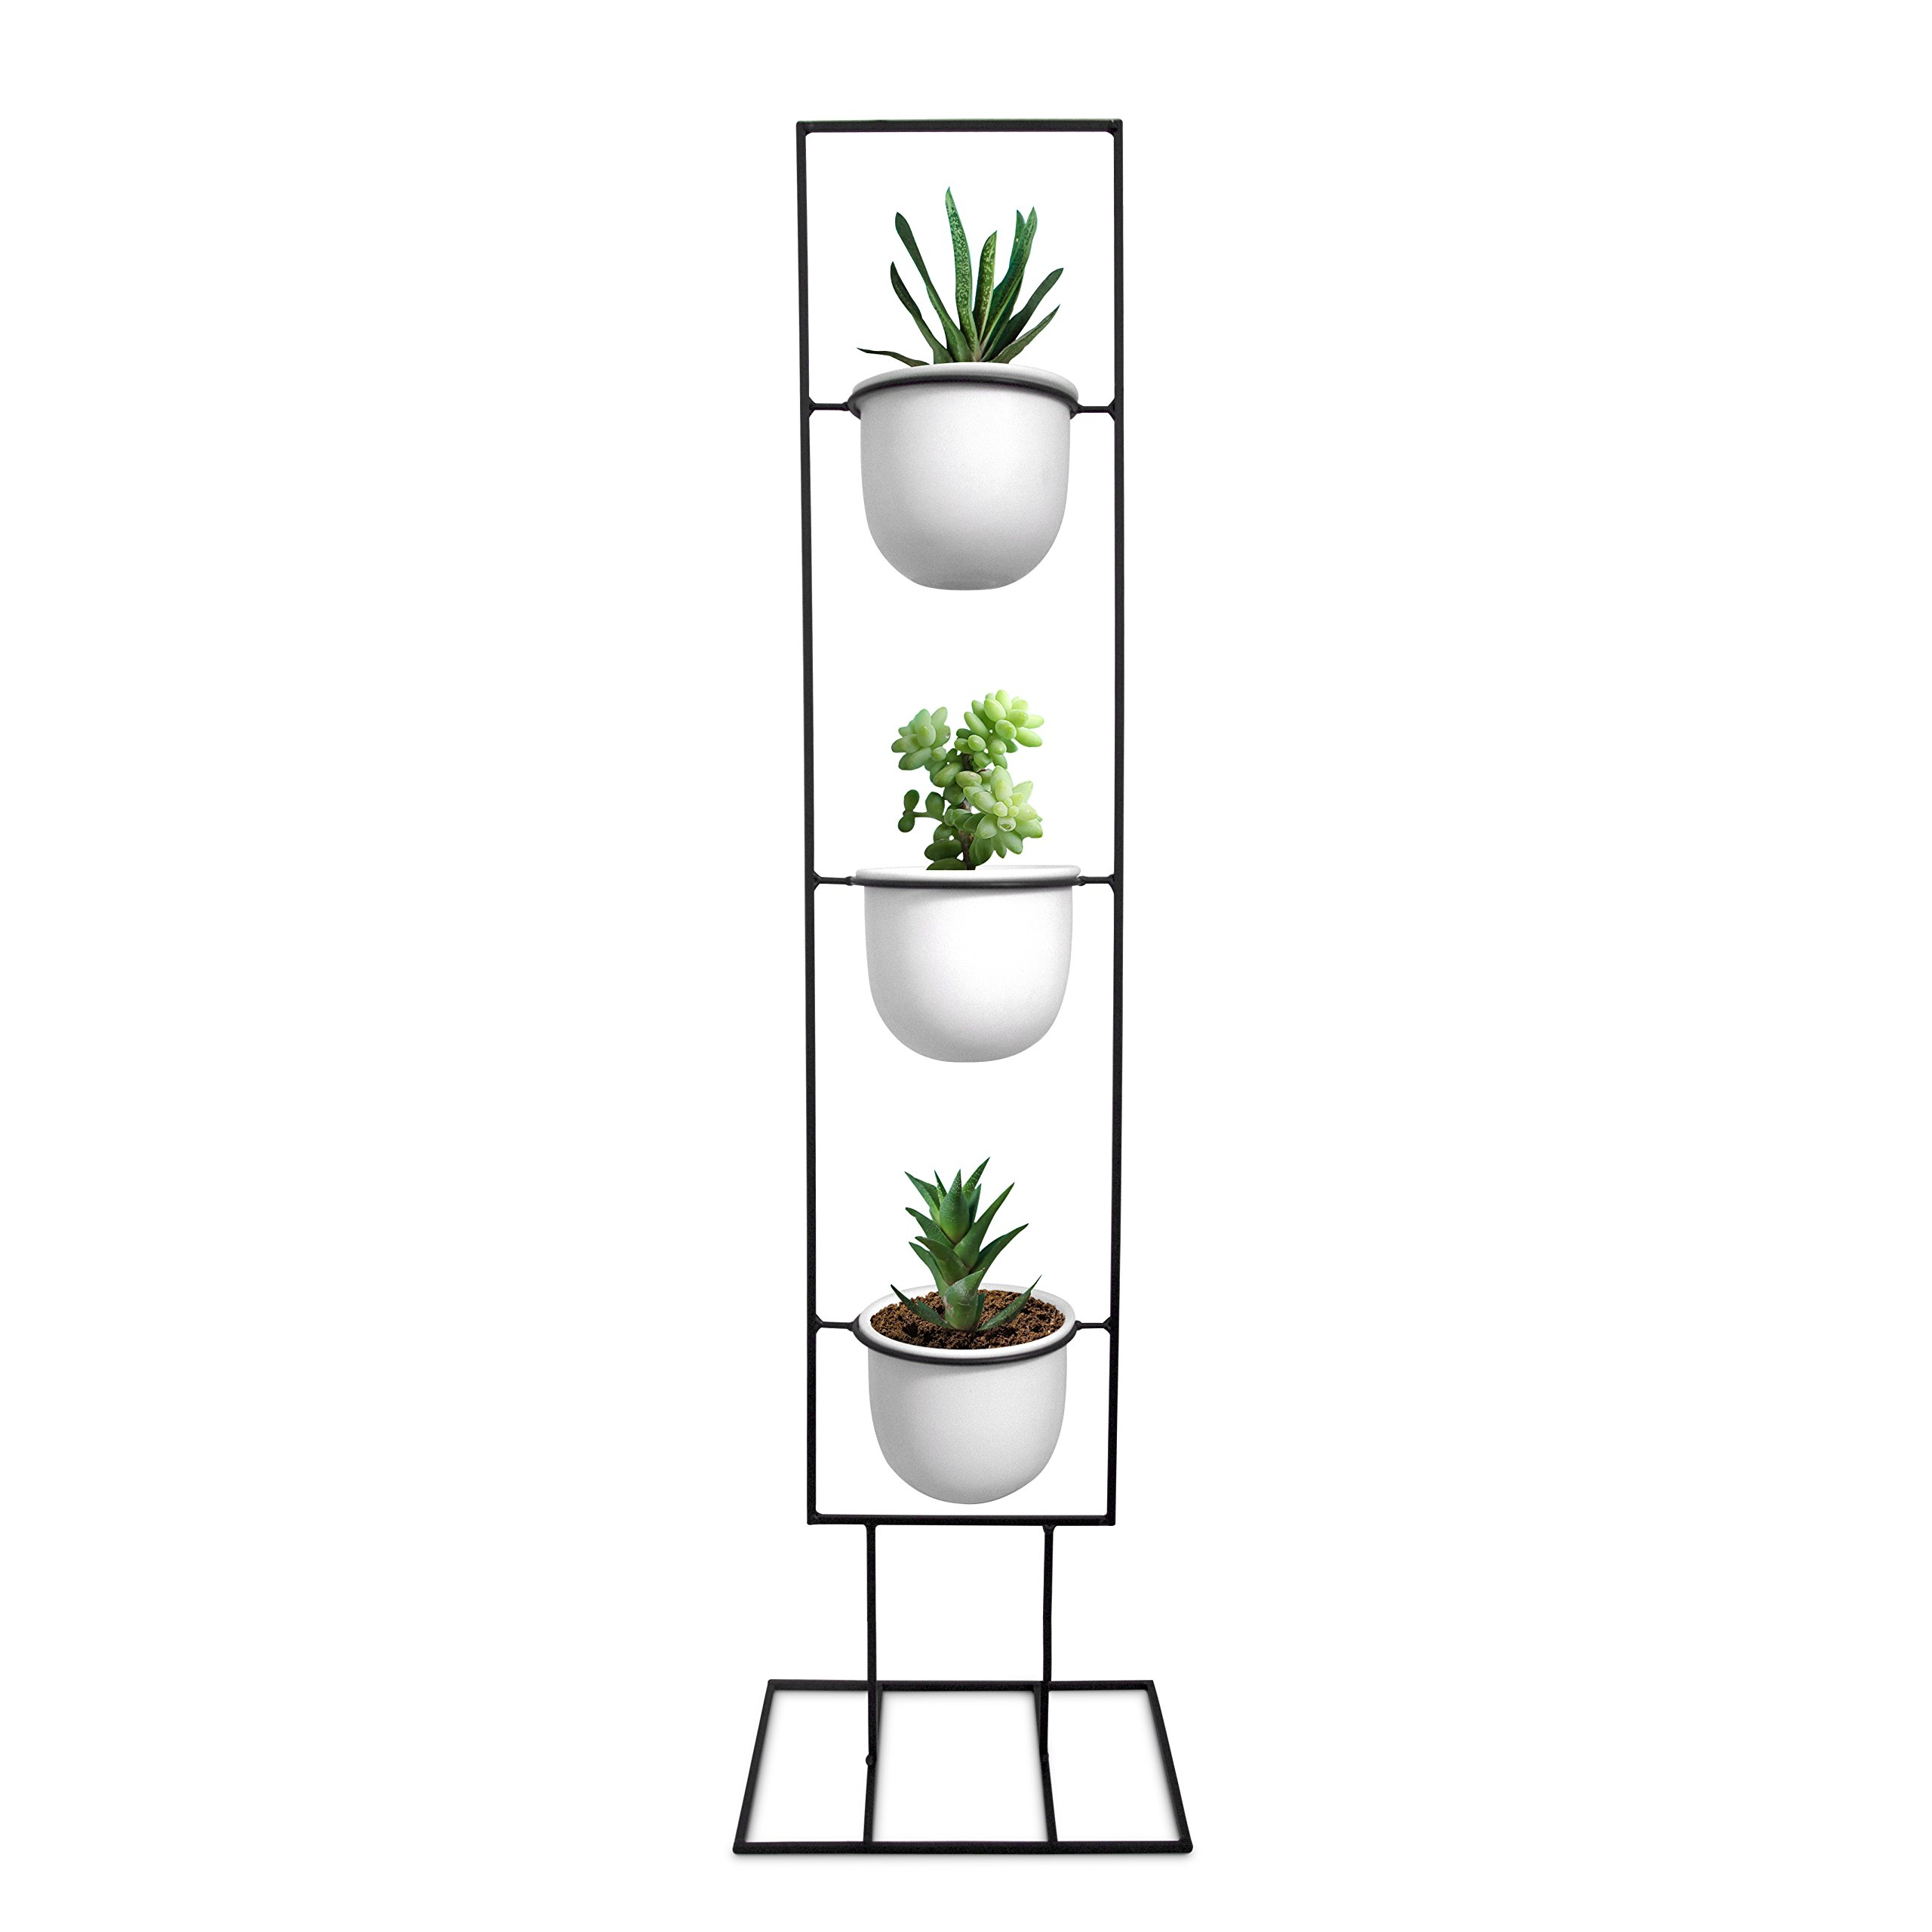 Cheap White Plant Pots Indoor Find White Plant Pots Indoor Deals On